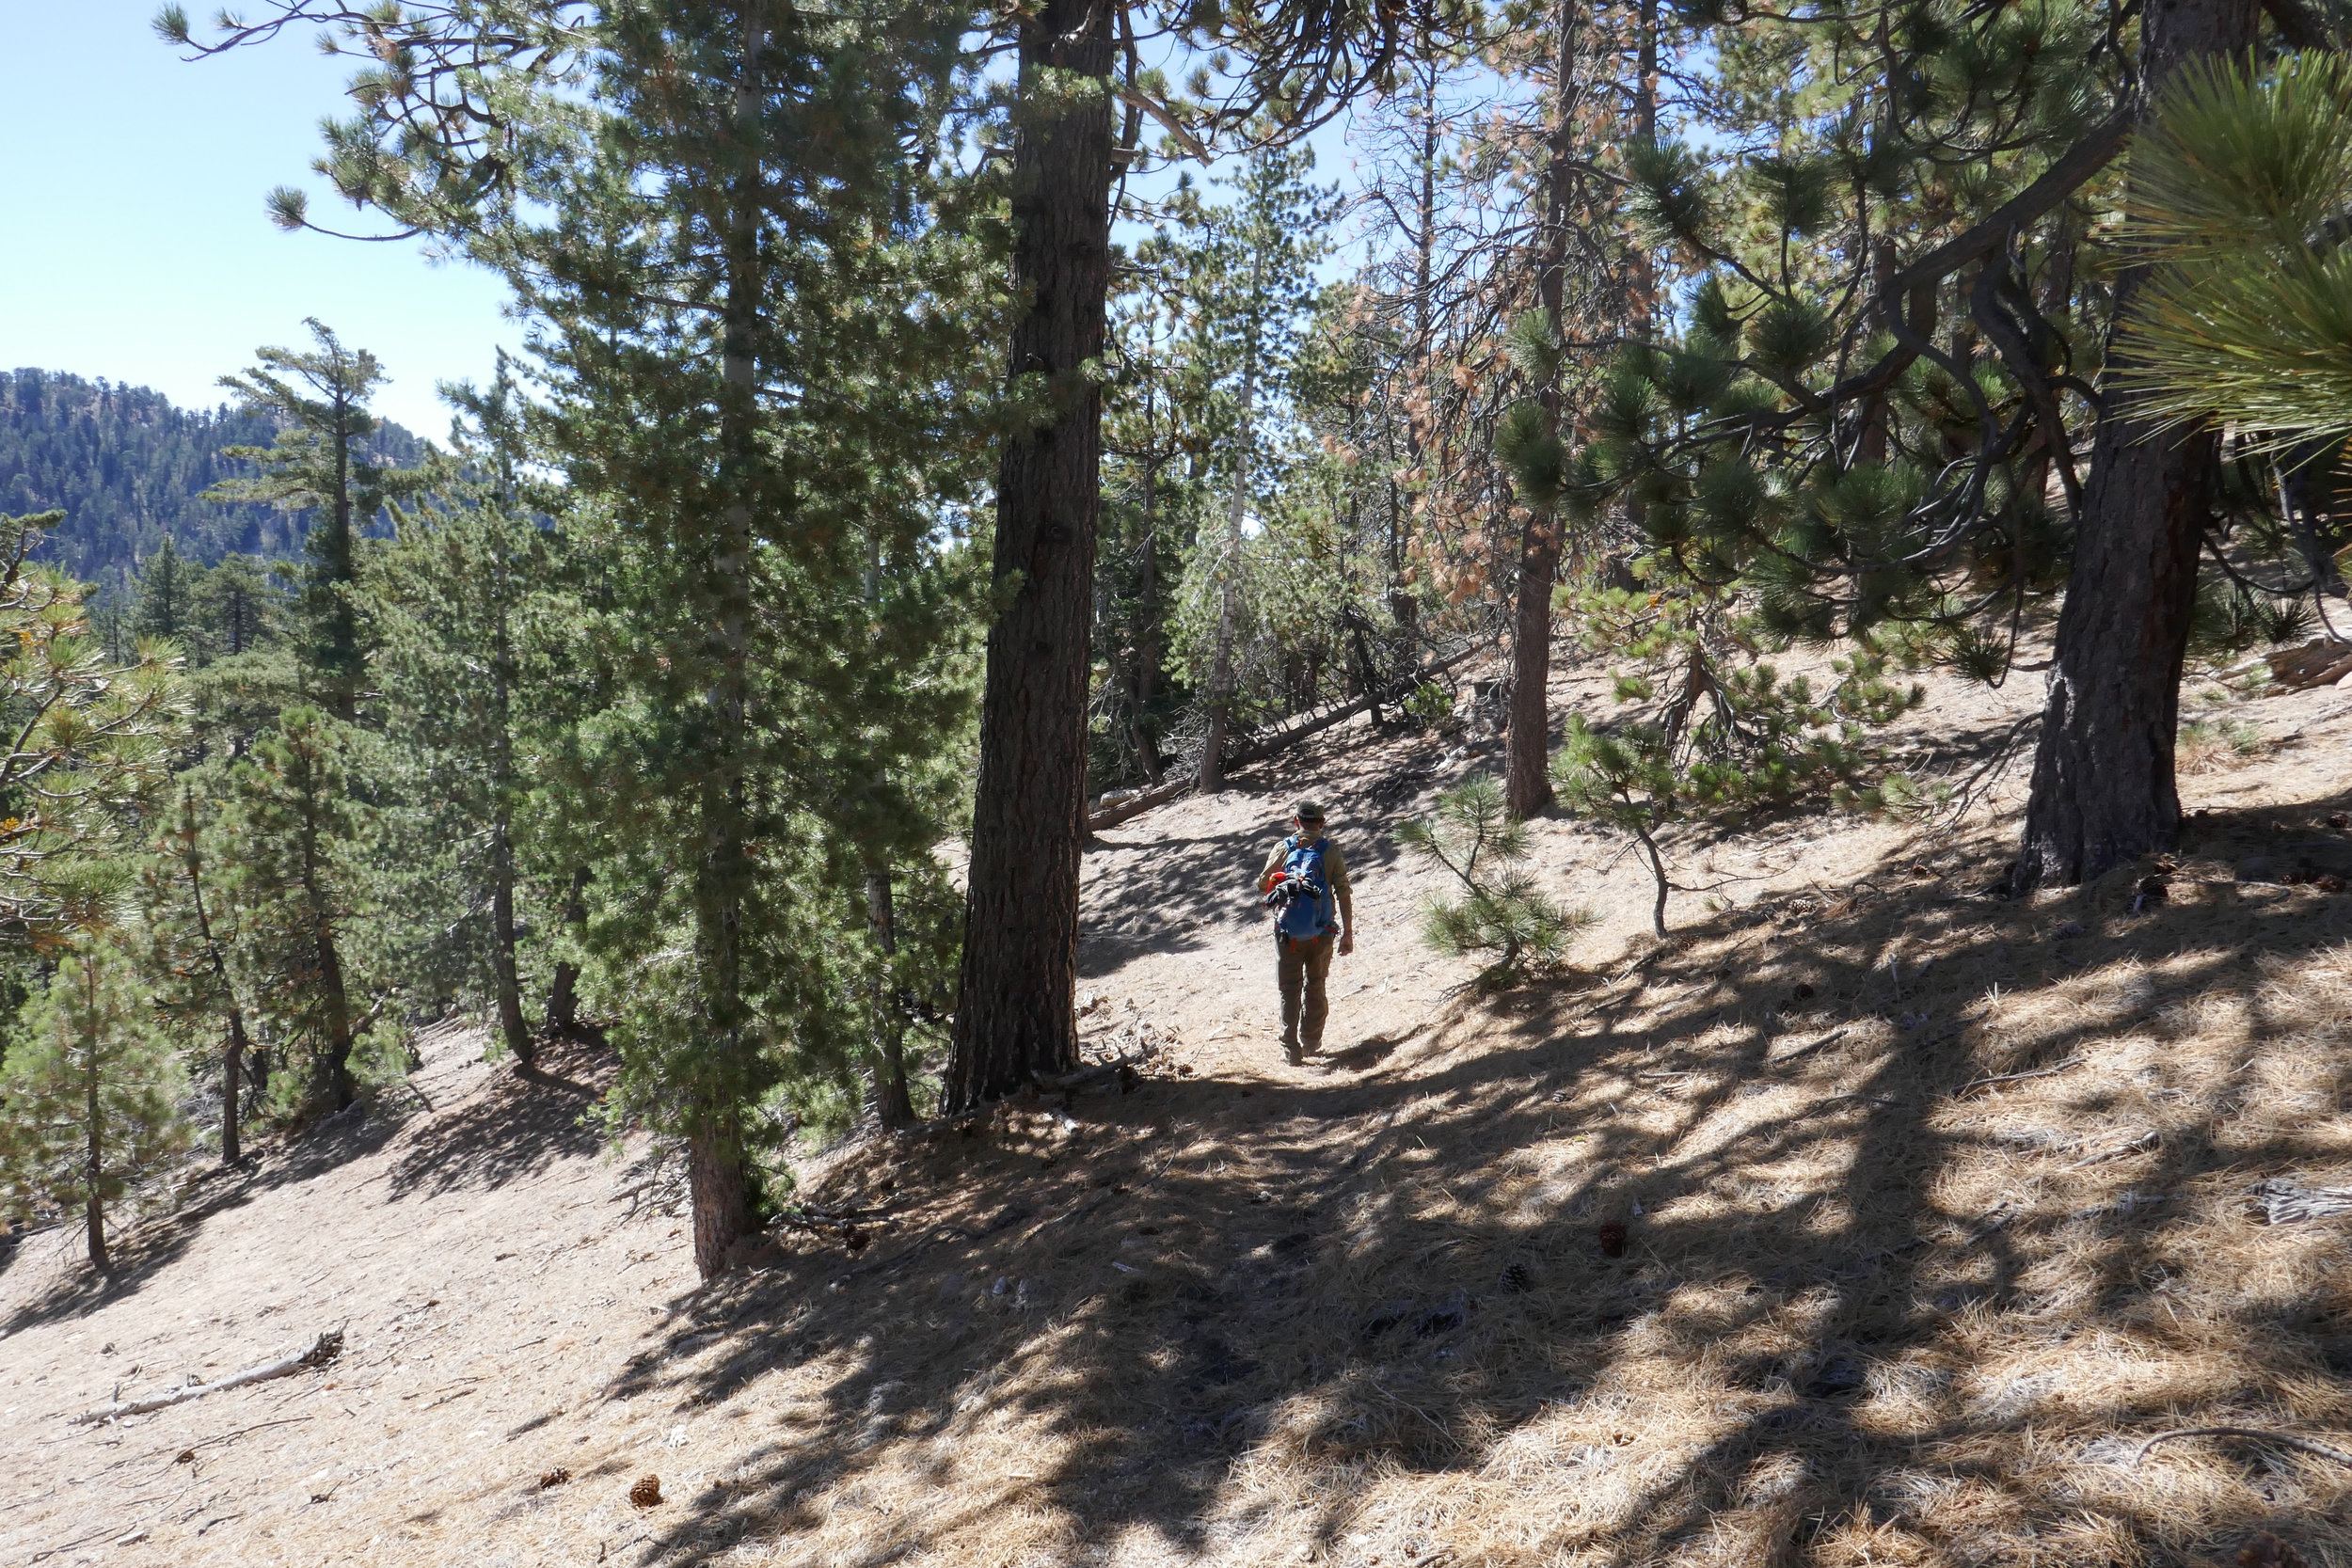 The trail turns southwest as it wraps around the mountain and finally disappears.